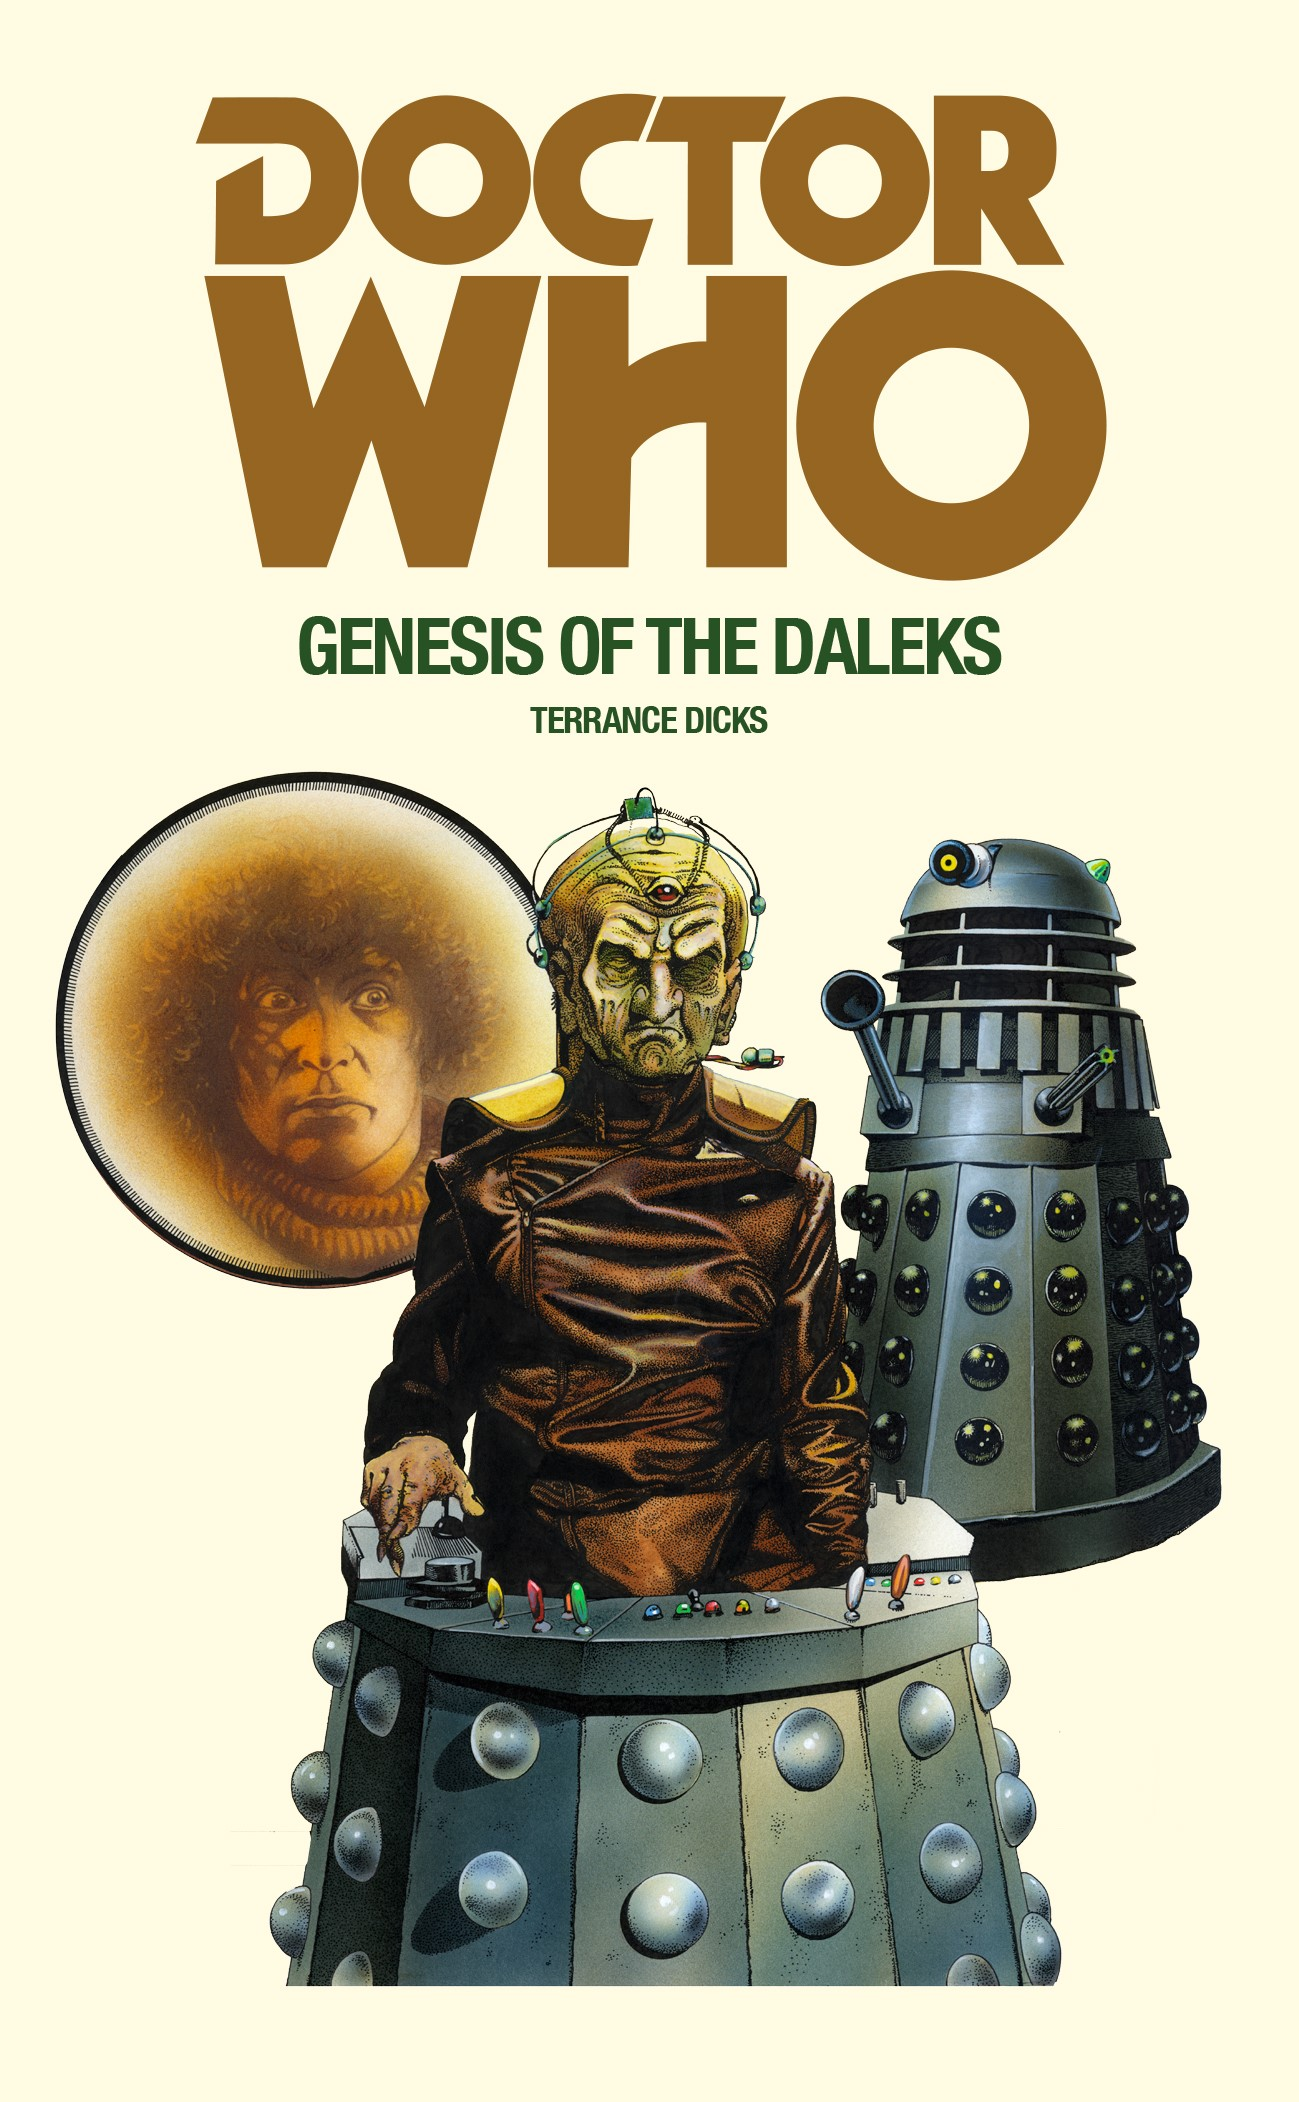 Classic Doctor Who art show coming to London